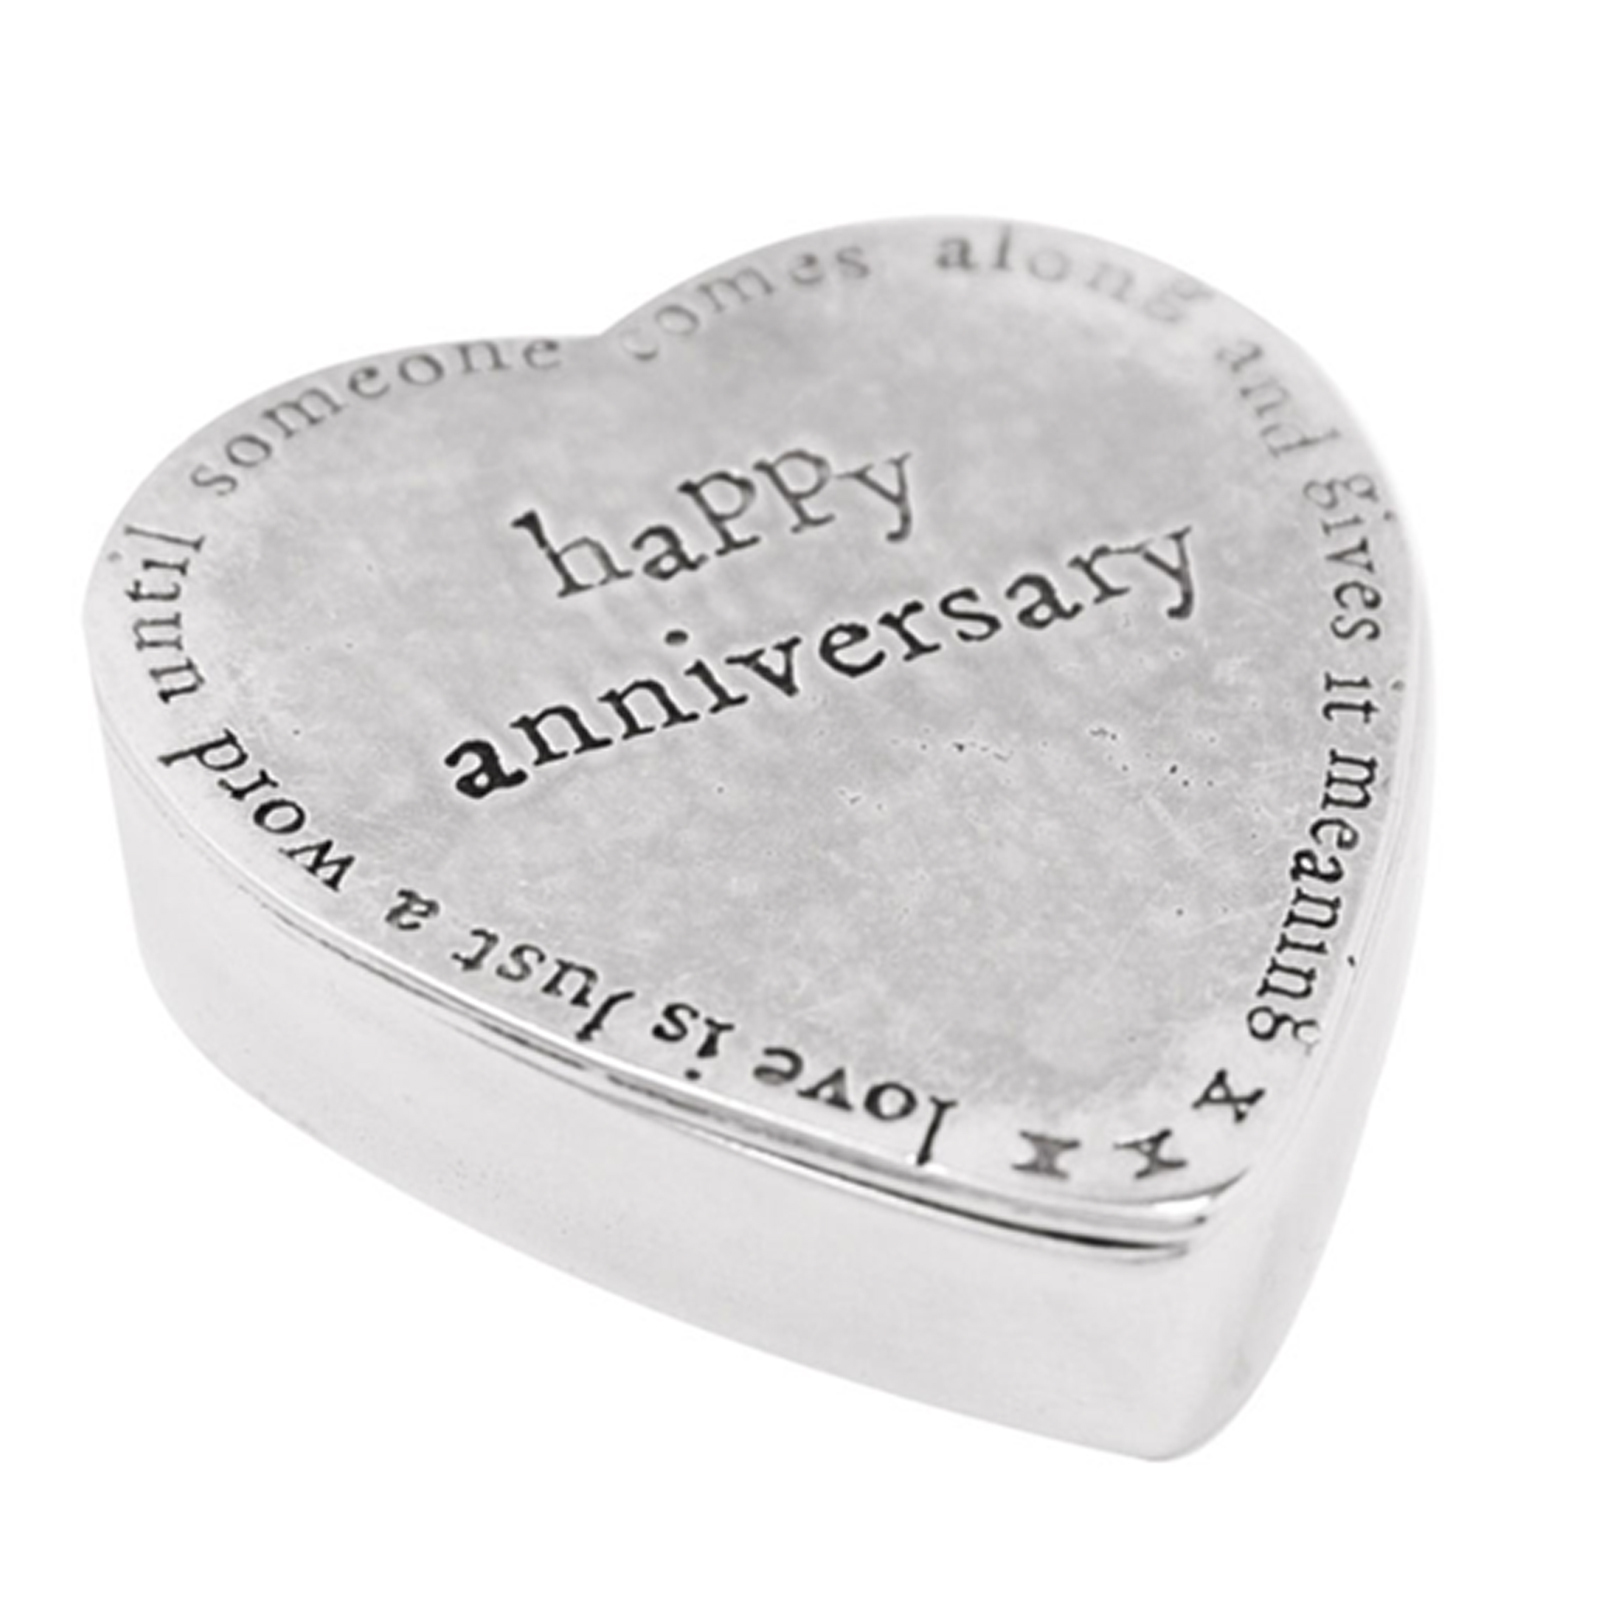 Pewter Heart Shaped Trinket Box - Happy Anniversary by The English Pewter Company